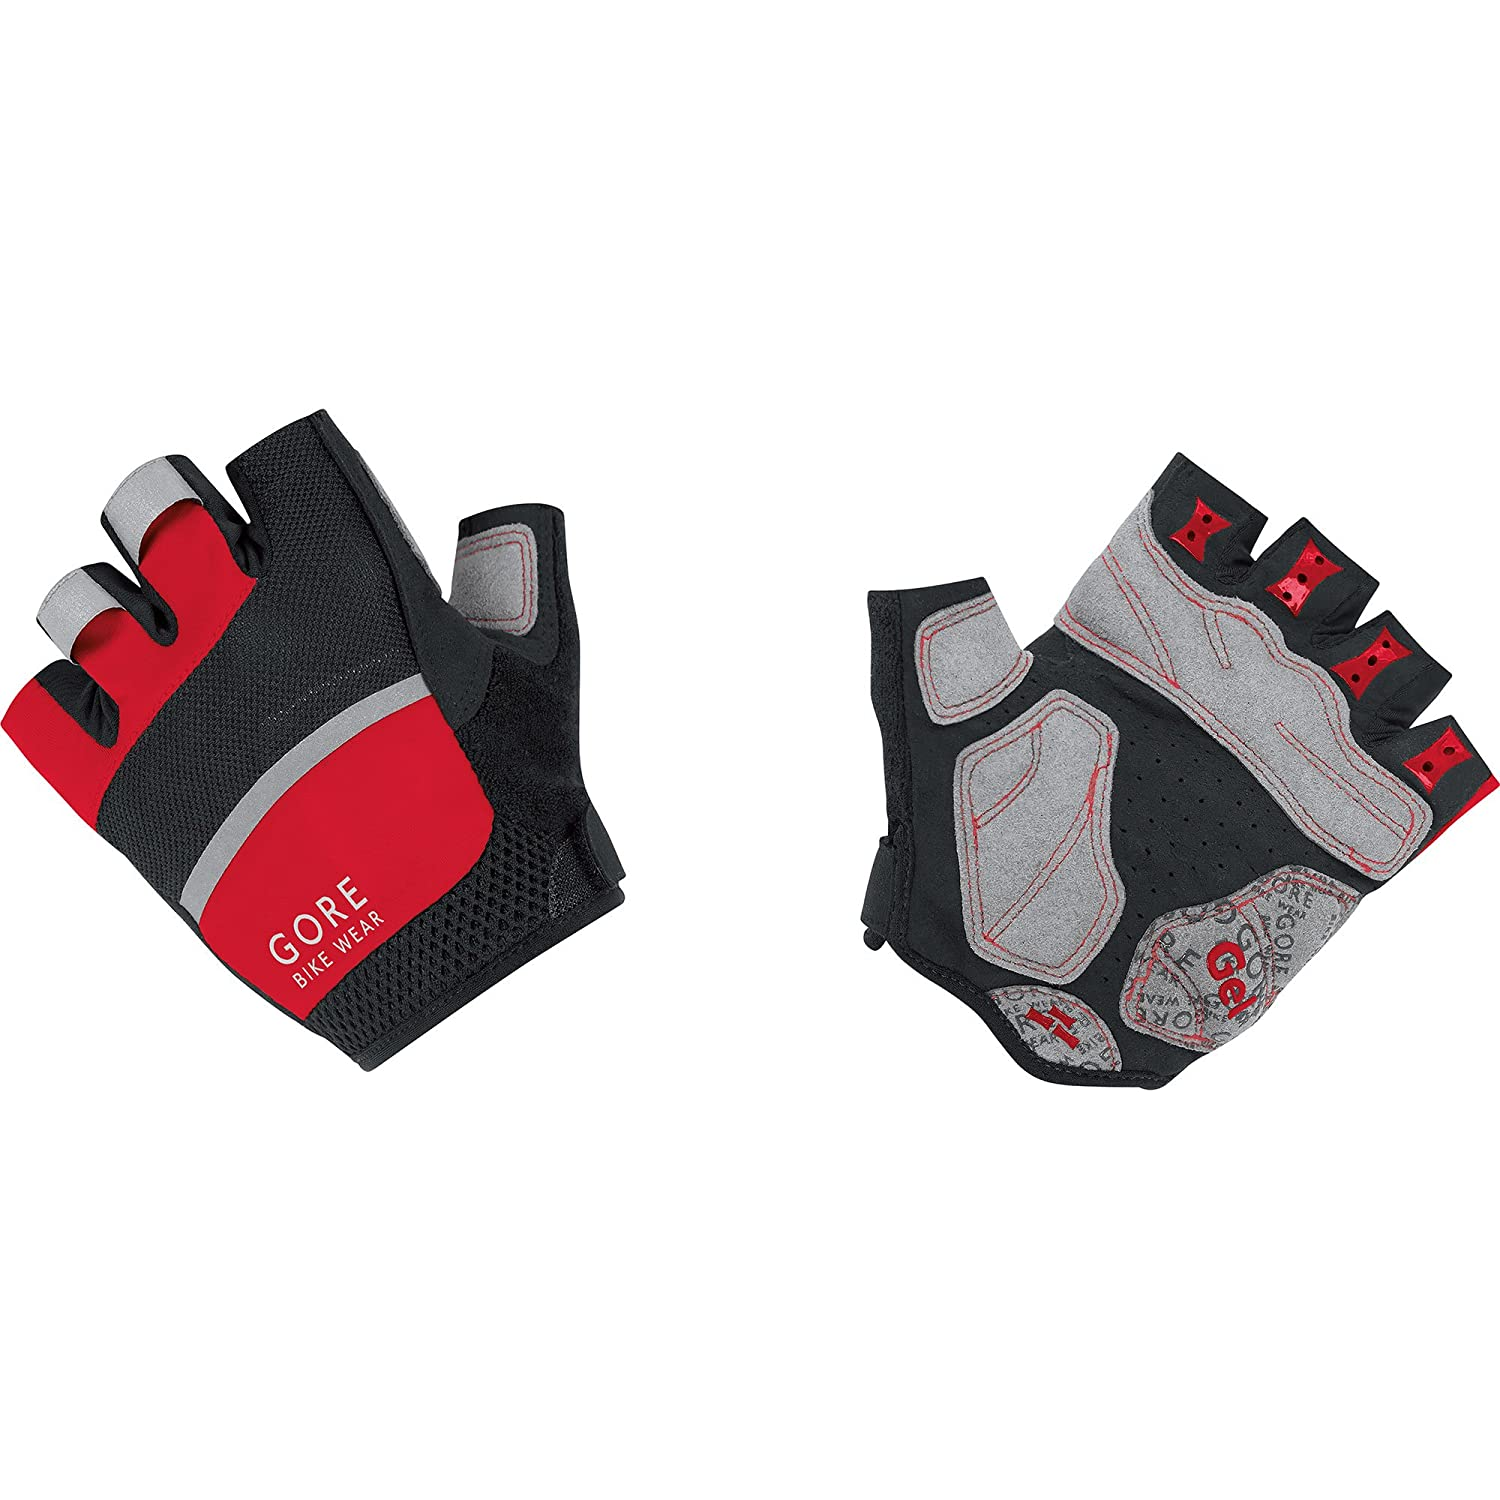 GORE BIKE WEAR Oxygen Gloves GOXYGE